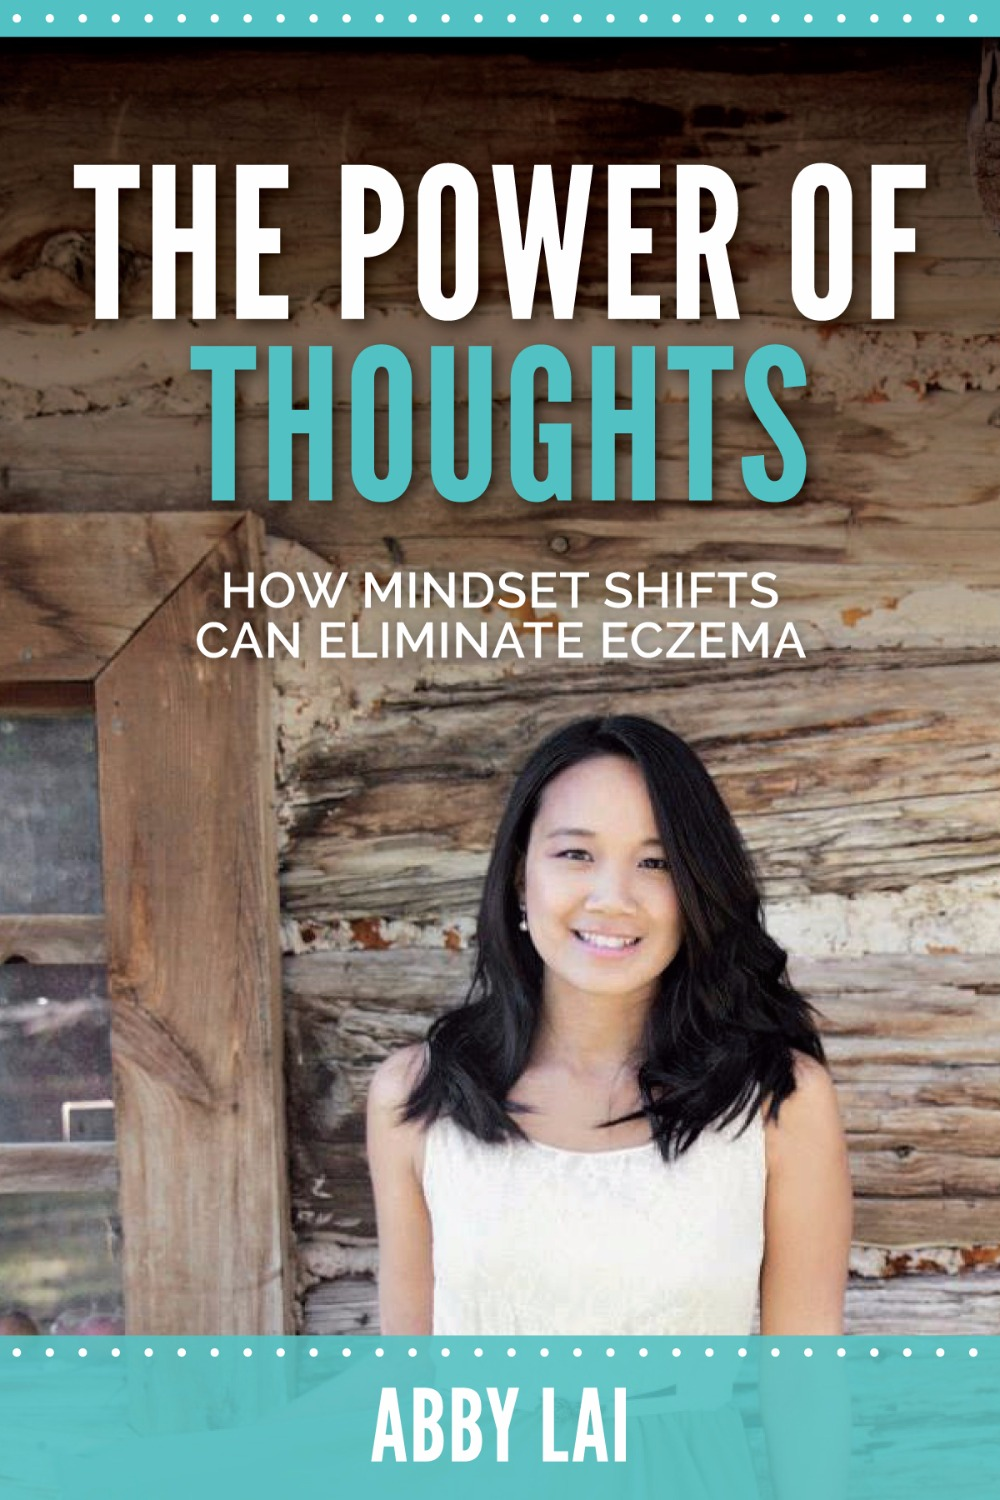 """The Power of Thoughts: How Mindset Shifts Can Help Eliminate Eczema"" eBook"